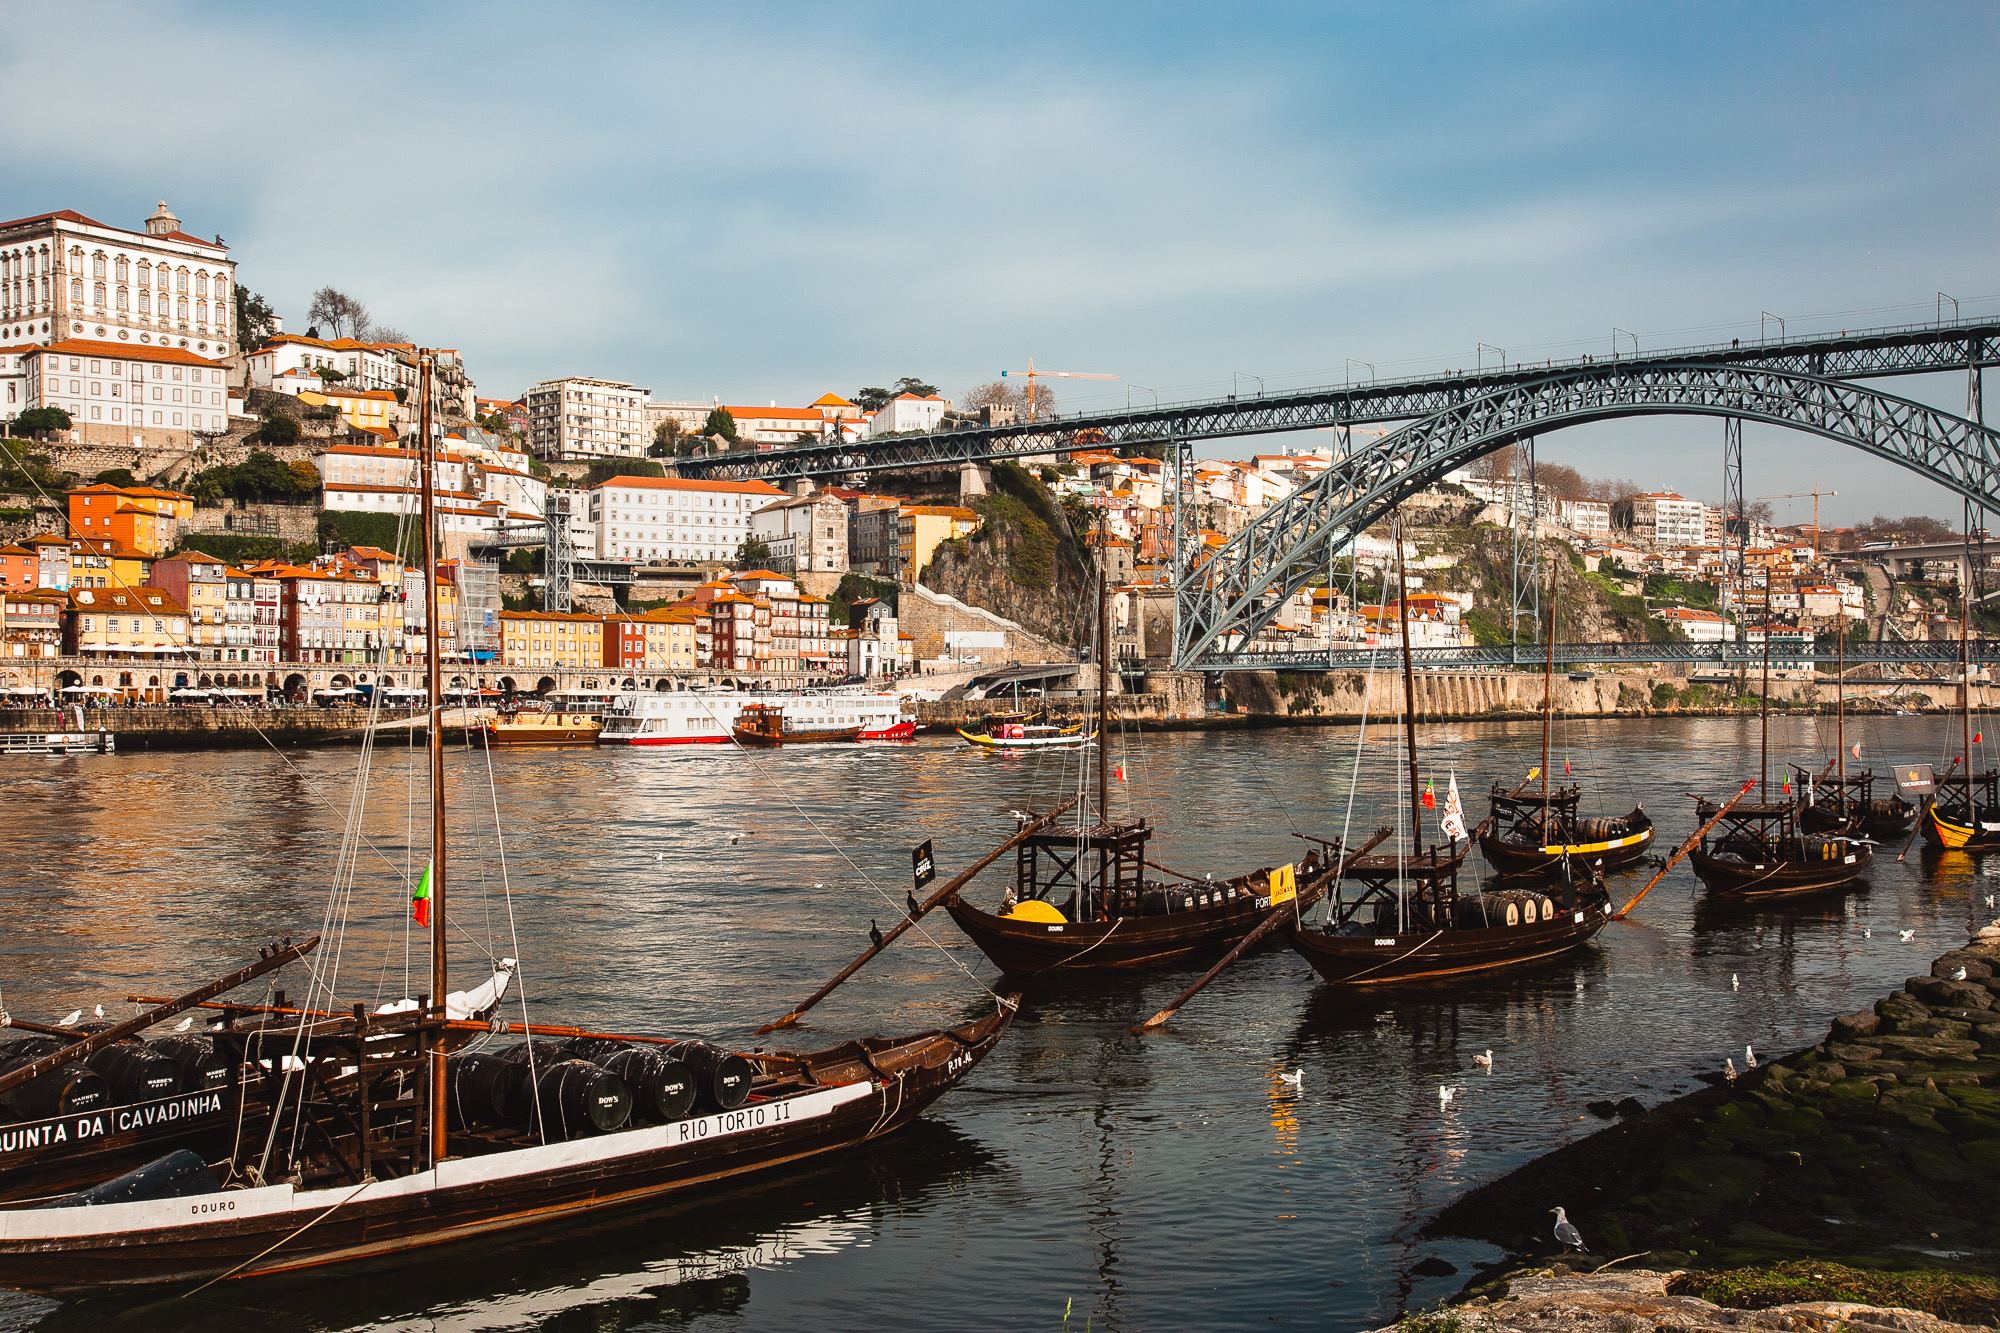 Luis I Bridge, Porto, Portugal - A one day Travel Guide on The Adagio Blog, by Thais FK